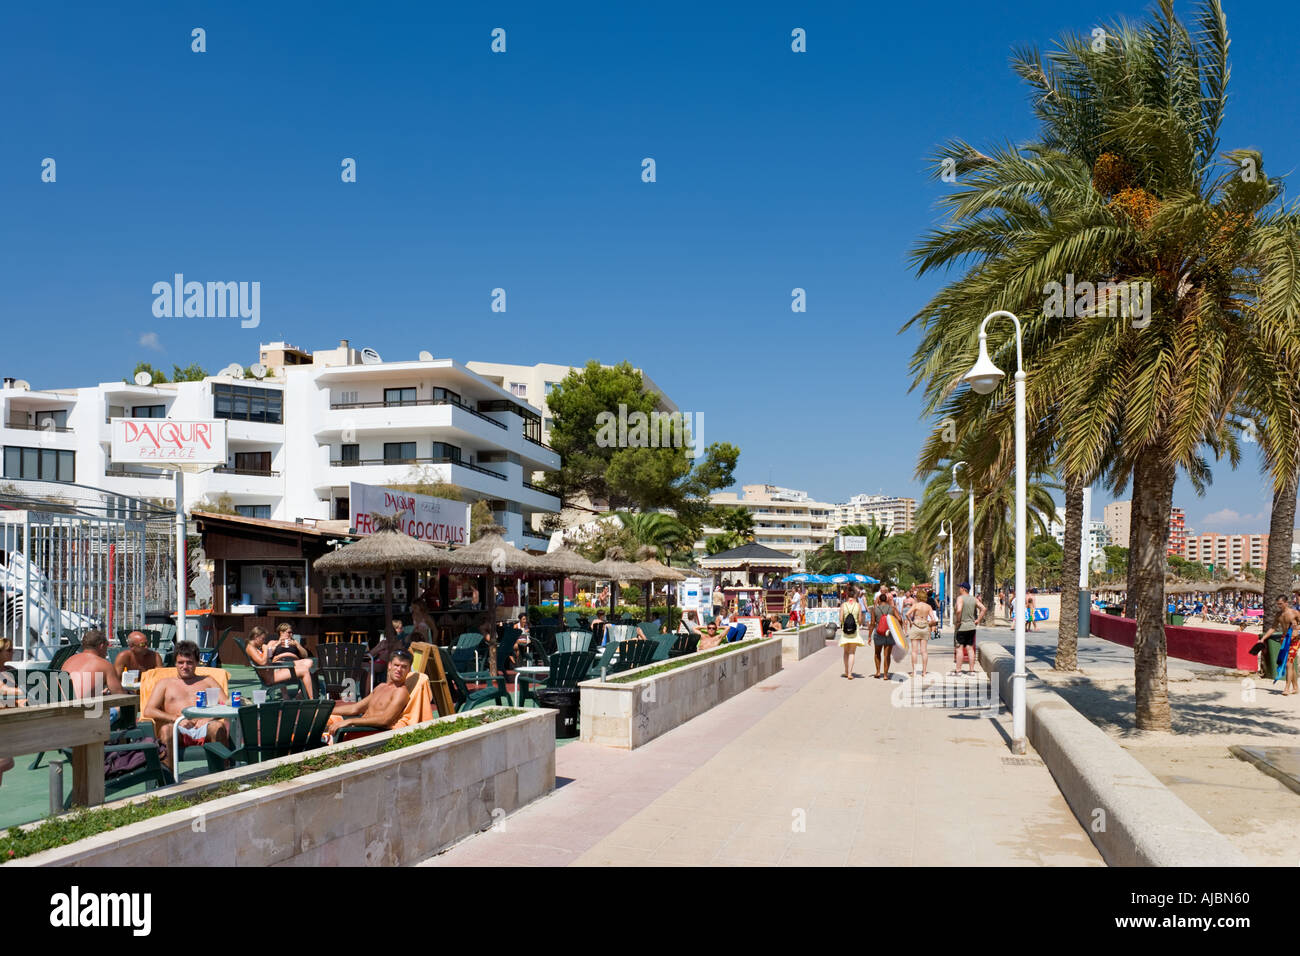 Beachfront Cocktail, Magaluf, Bay of Palma, Mallorca, Balearic Islands, Spain - Stock Image